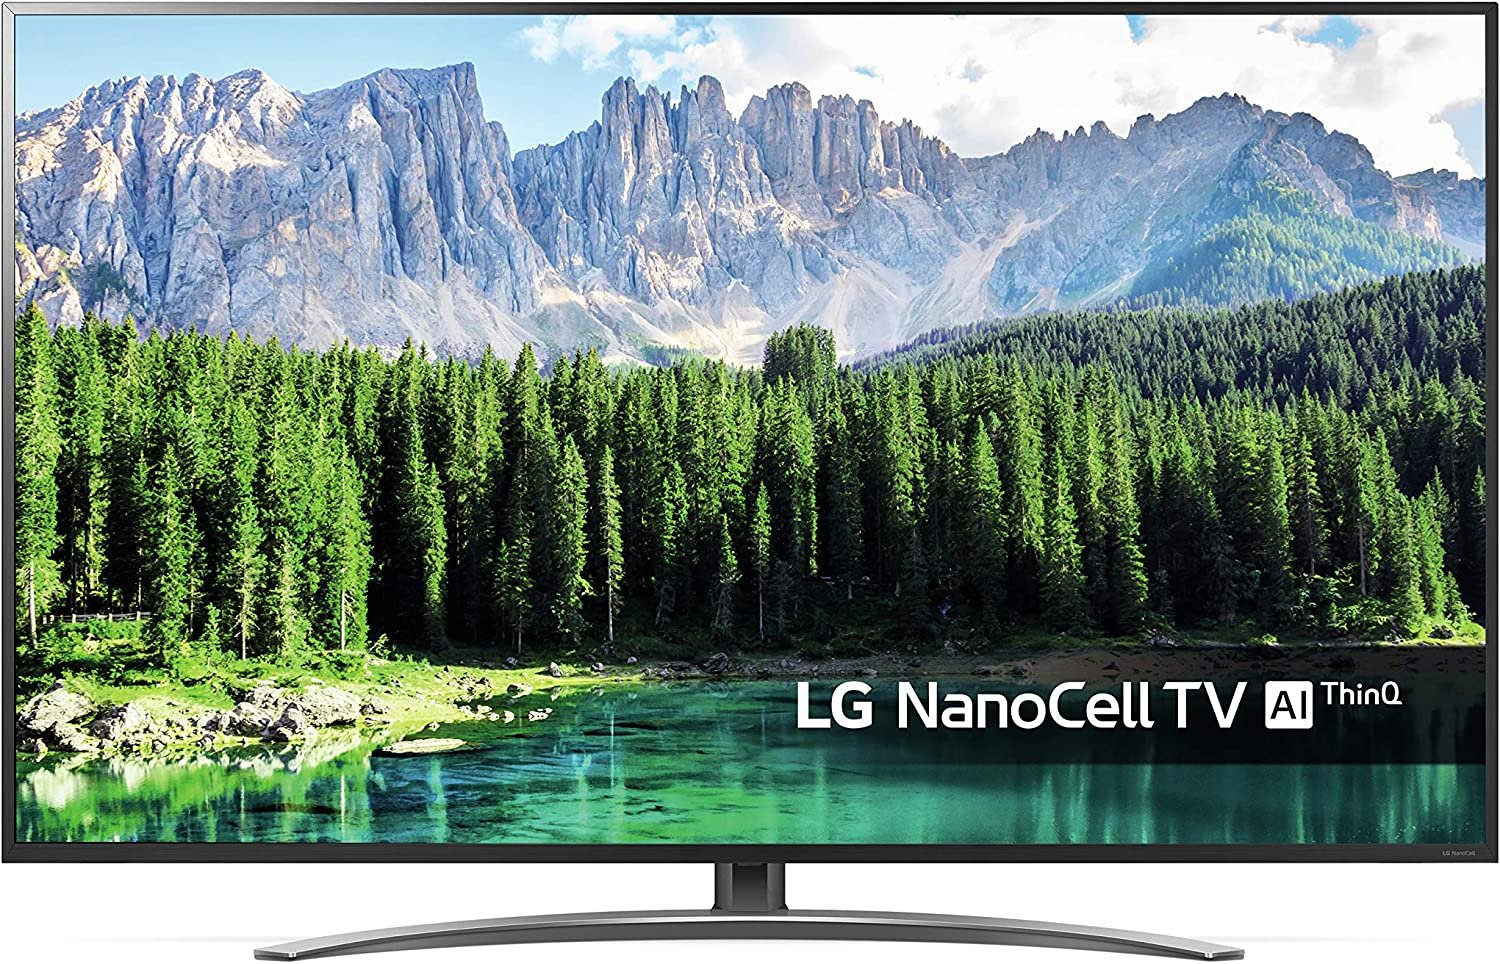 LG - TV Led 139 Cm (55)  Lg 55Sm8600 Nanocell 4K HDR Smart TV con Inteligencia Artificial (IA): 609.09: Amazon.es: Electrónica